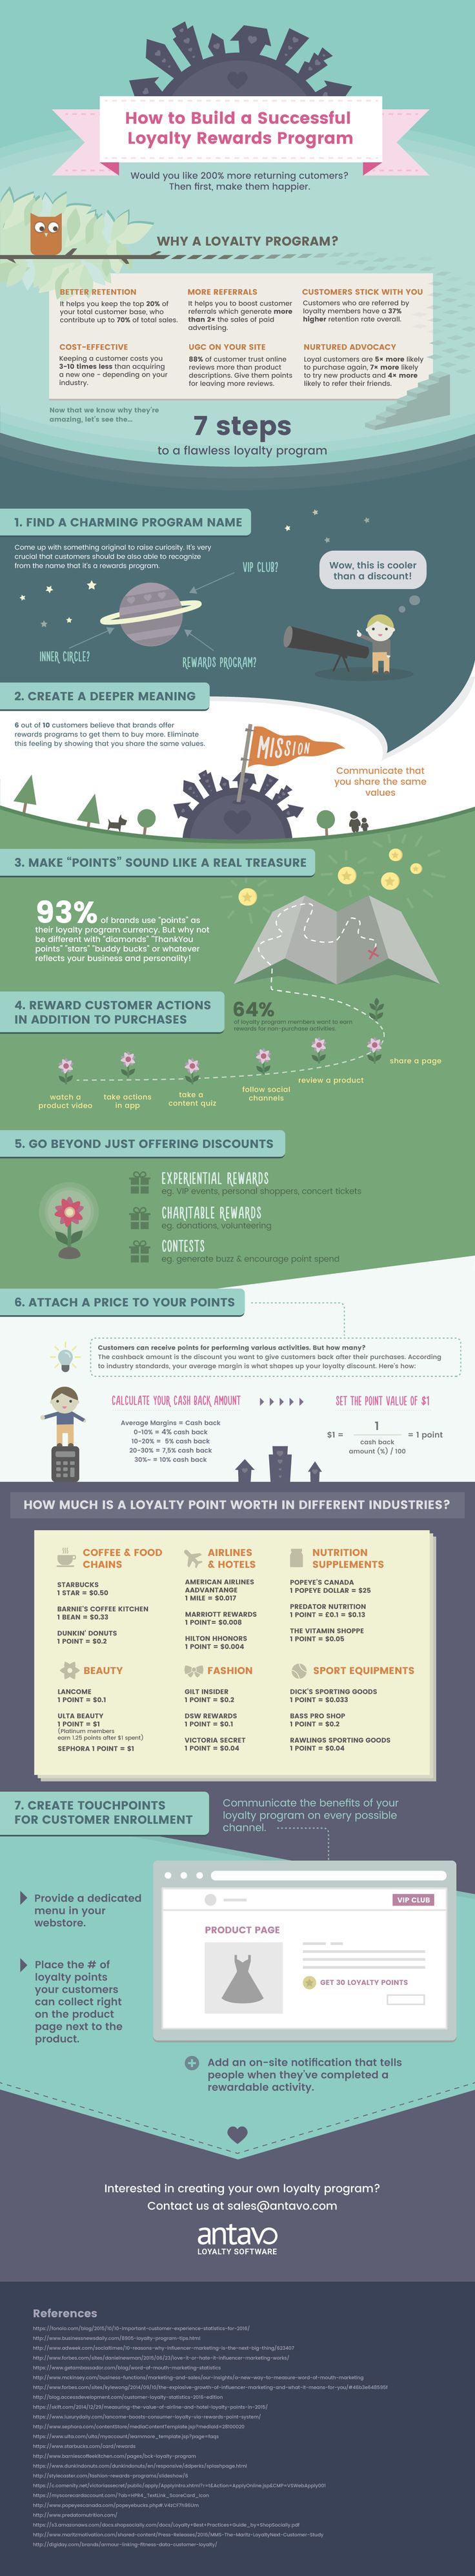 A Simple Guide to Building a Successful Loyalty Rewards Program #Infographic